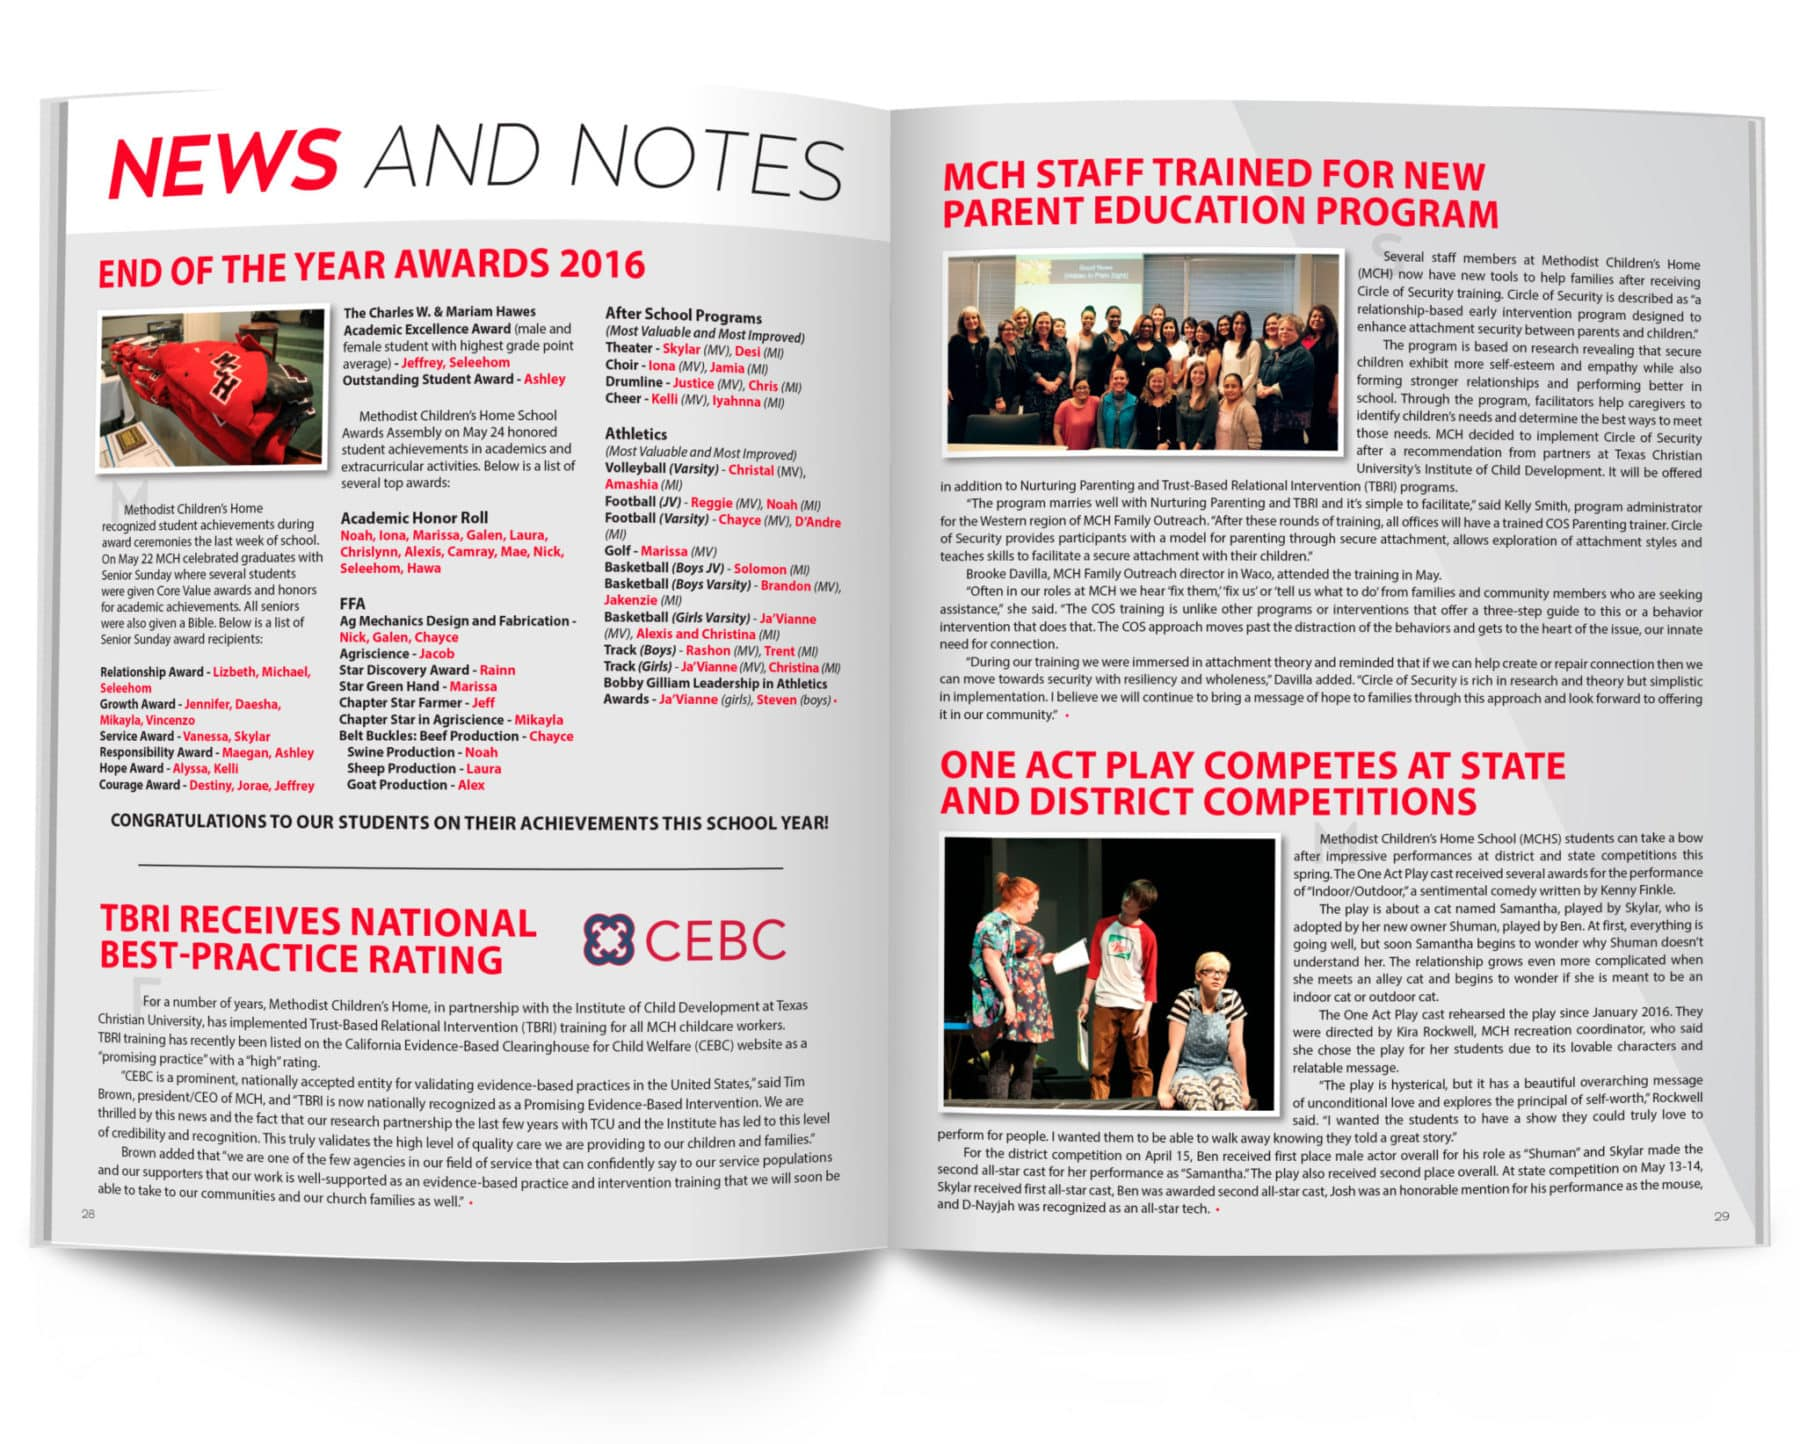 News and Notes Summer 2016 Magazine Spread